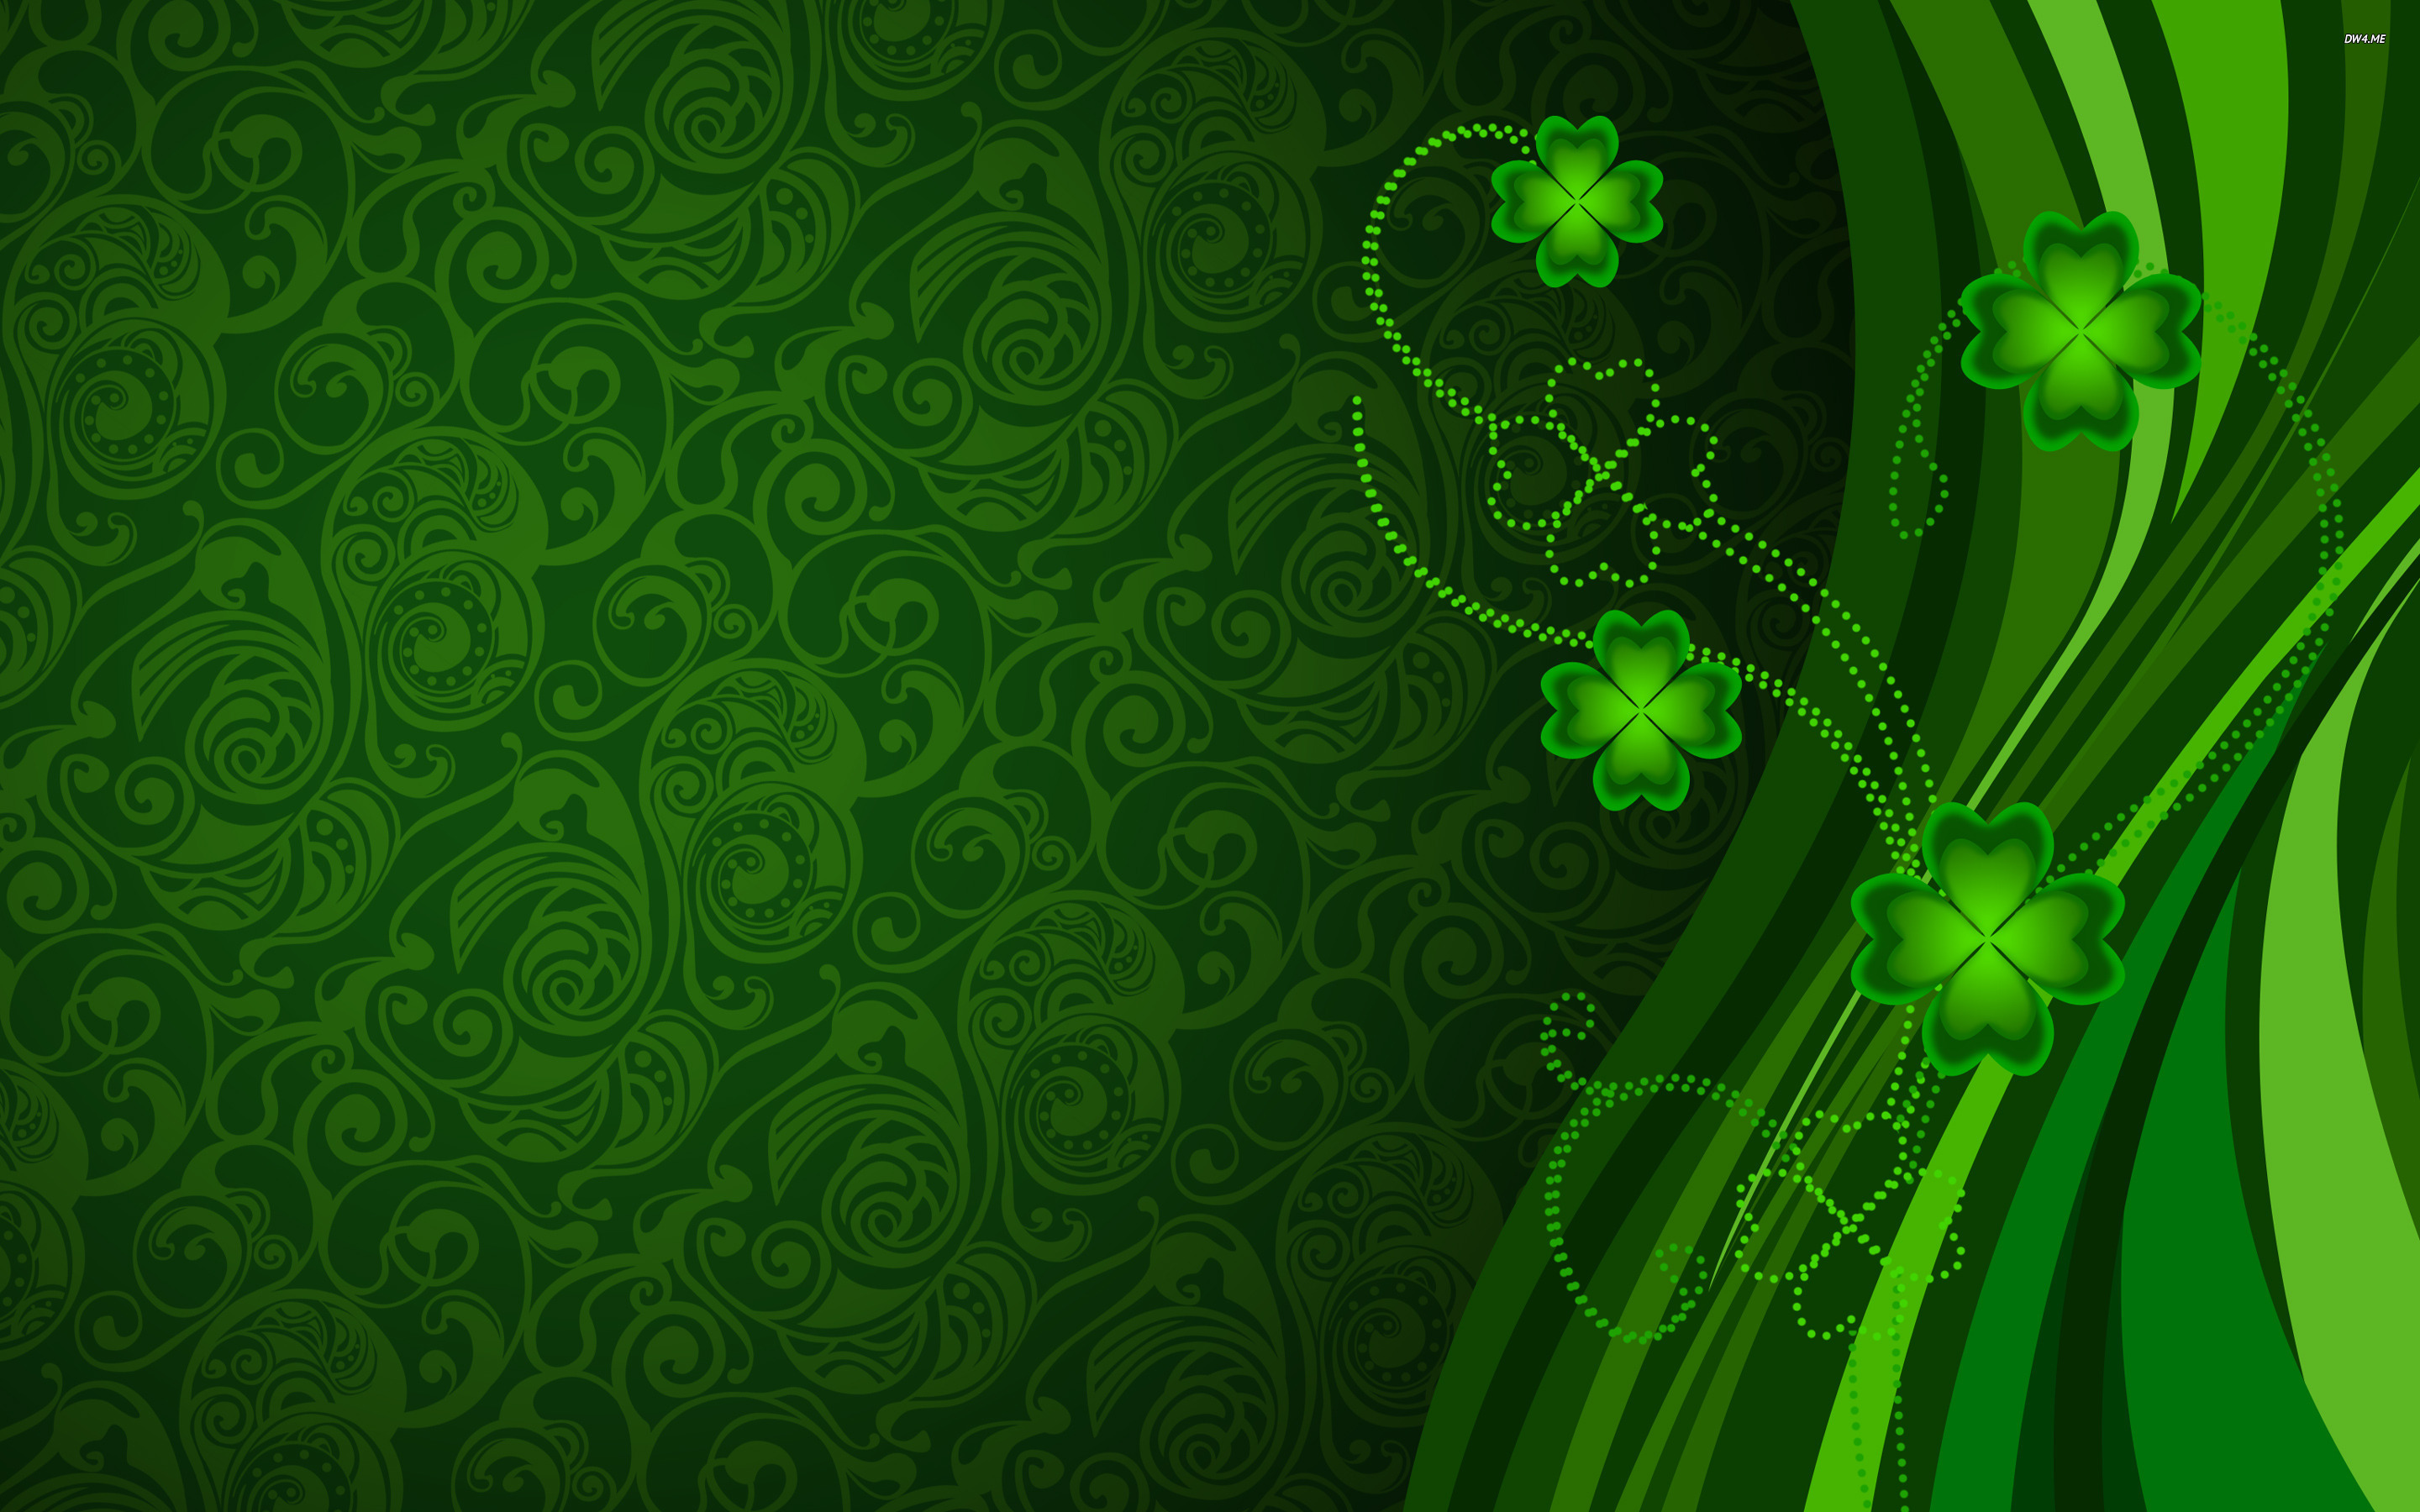 Free Download Clovers Wallpaper Holiday Wallpapers 2149